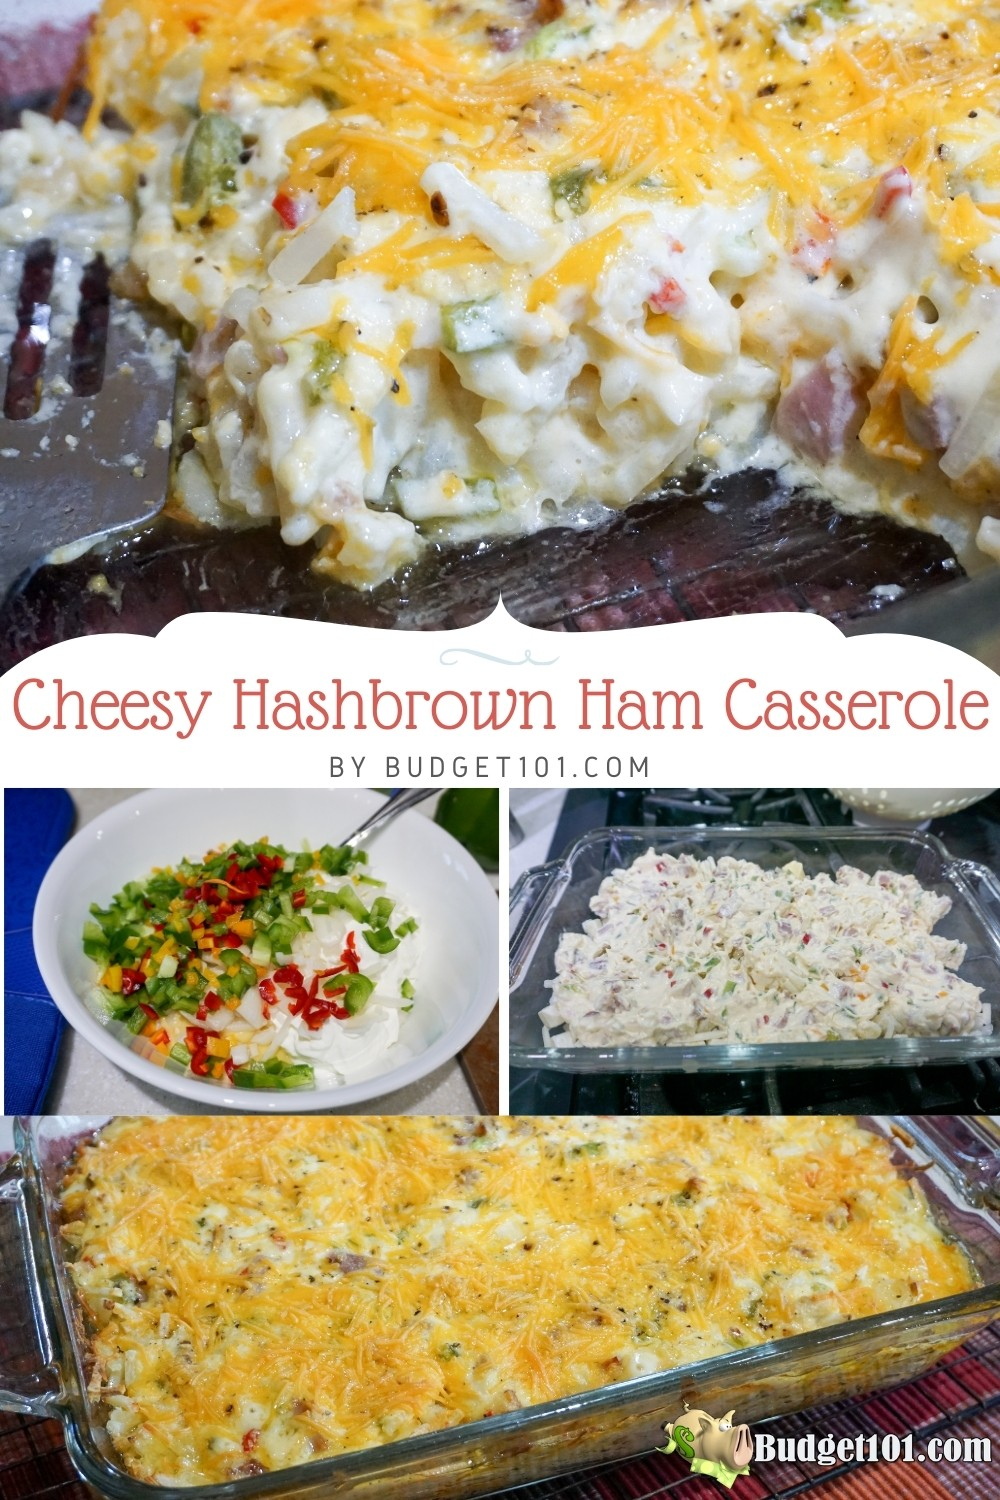 Cheesy Hashbrown Ham Casserole- a delicious way to use up a bit of leftover ham in a hearty breakfast casserole the whole family will LOVE. #Ham #Leftovers #Casserole #Breakast #DirtCheap #HashbrownCasserole #MYO #Budget101